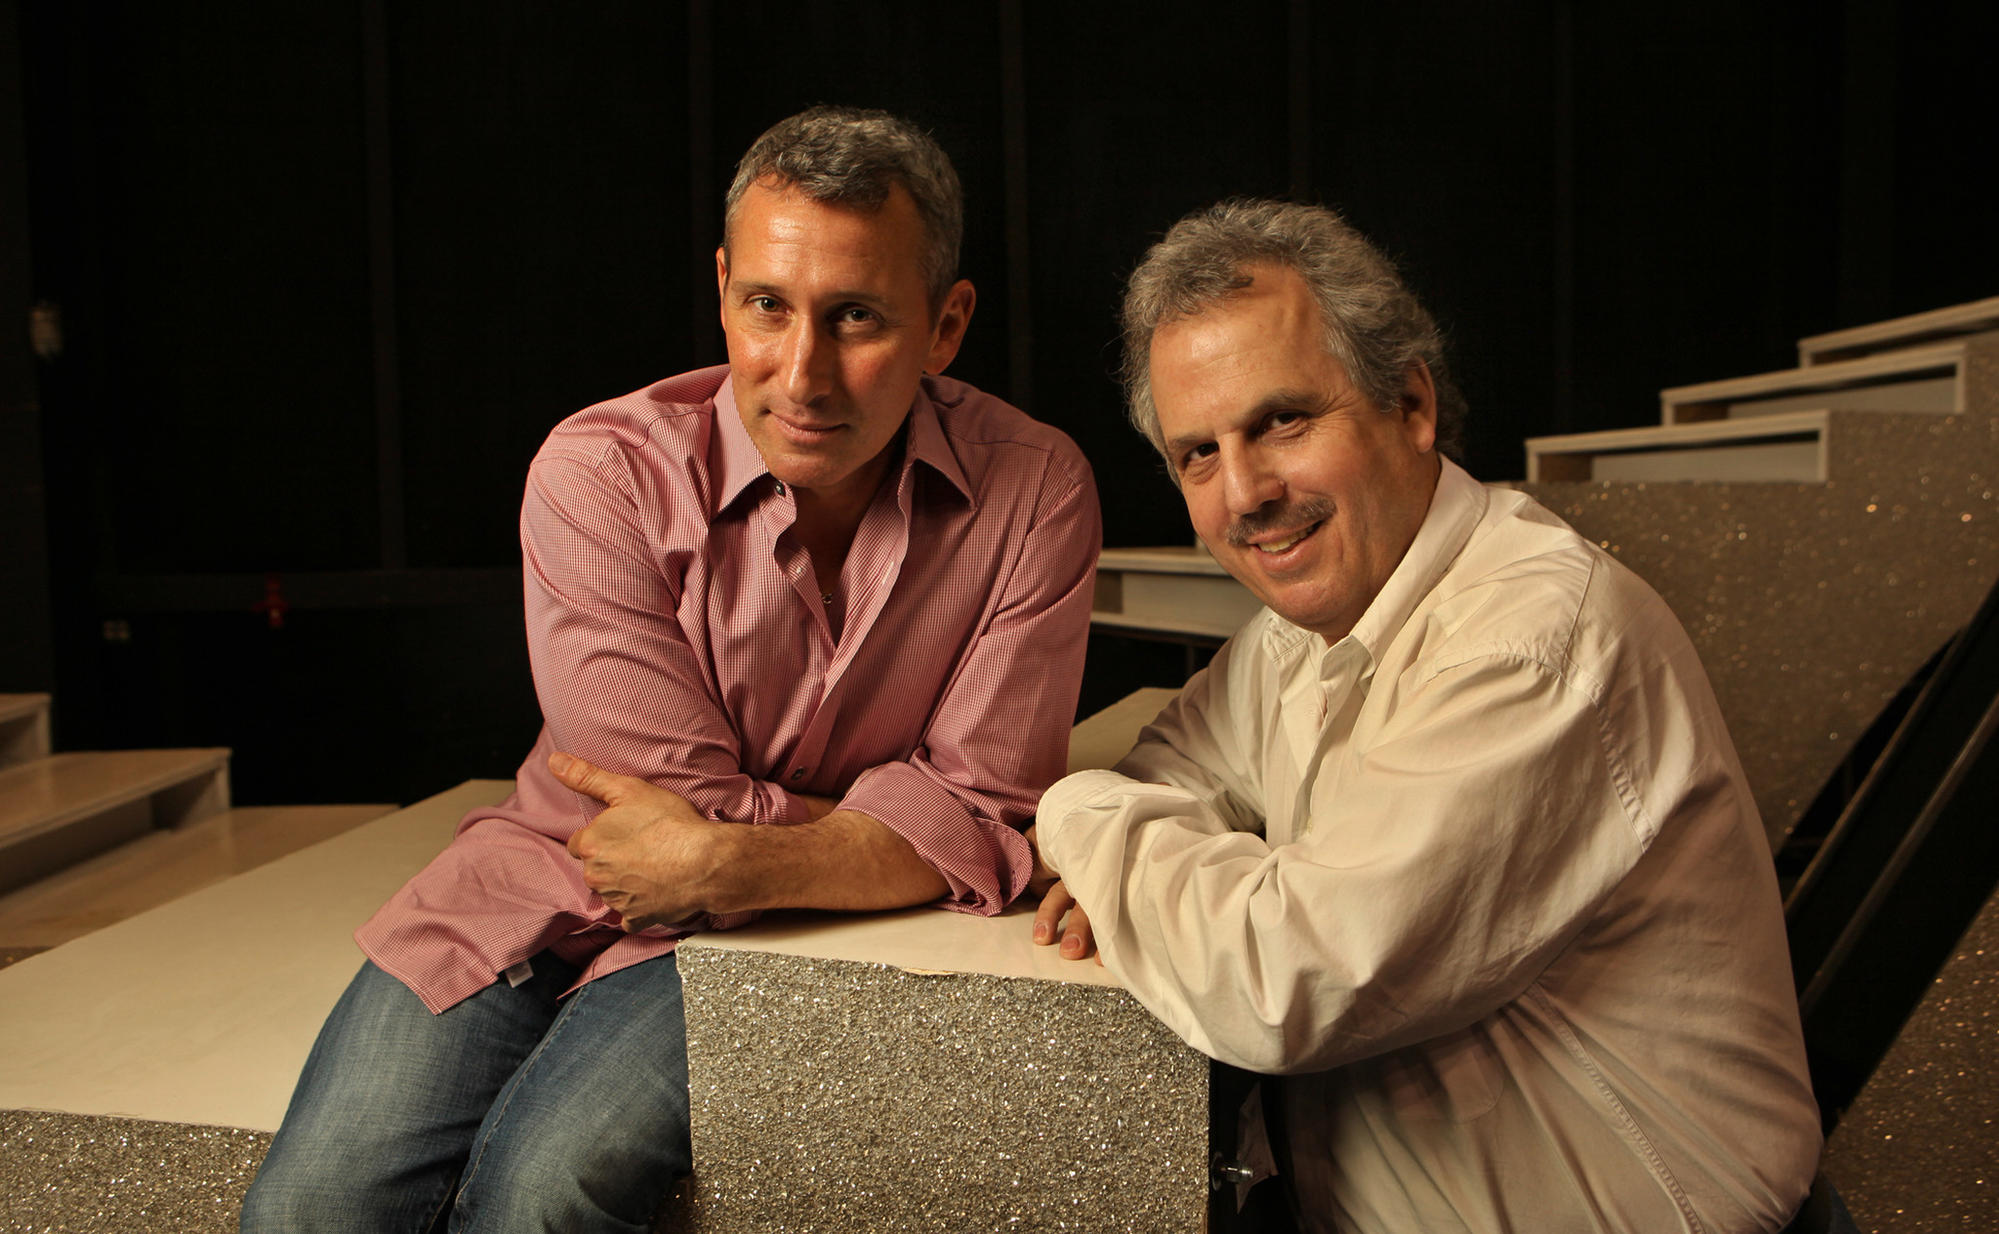 """""""Hacksaw Ridge"""" co-producer Bill Mechanic, right, produced the Academy Awards show in 2010 with Adam Shankman. (Al Seib / Los Angeles Times)"""